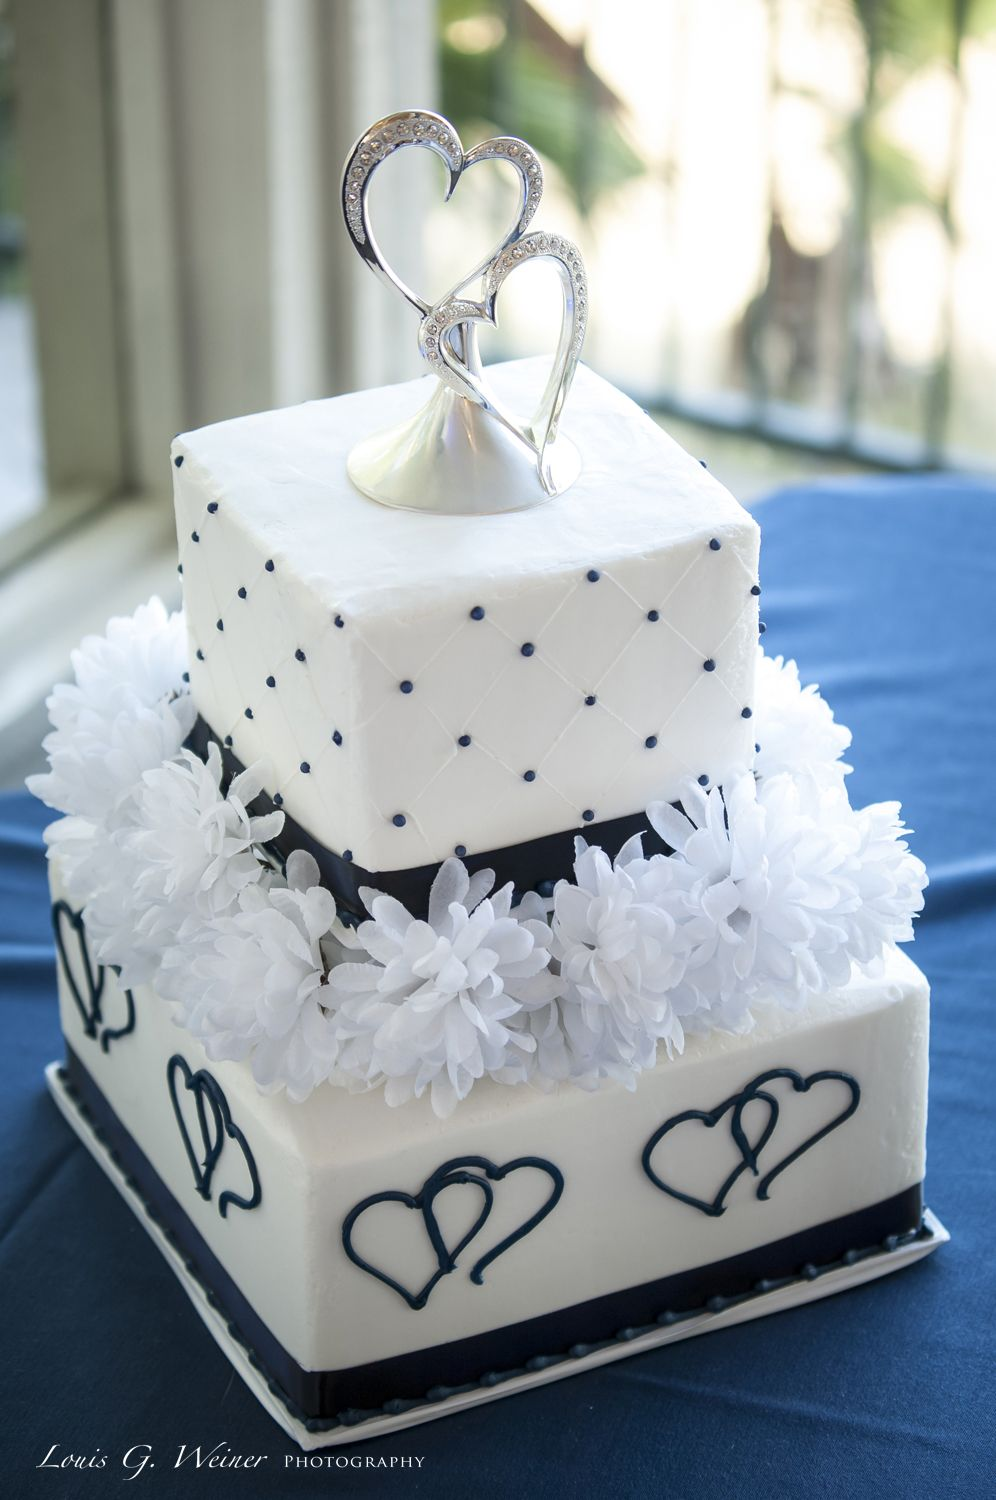 Heart Themed Wedding Cake By Michelle S Bakery In Redlands Ca